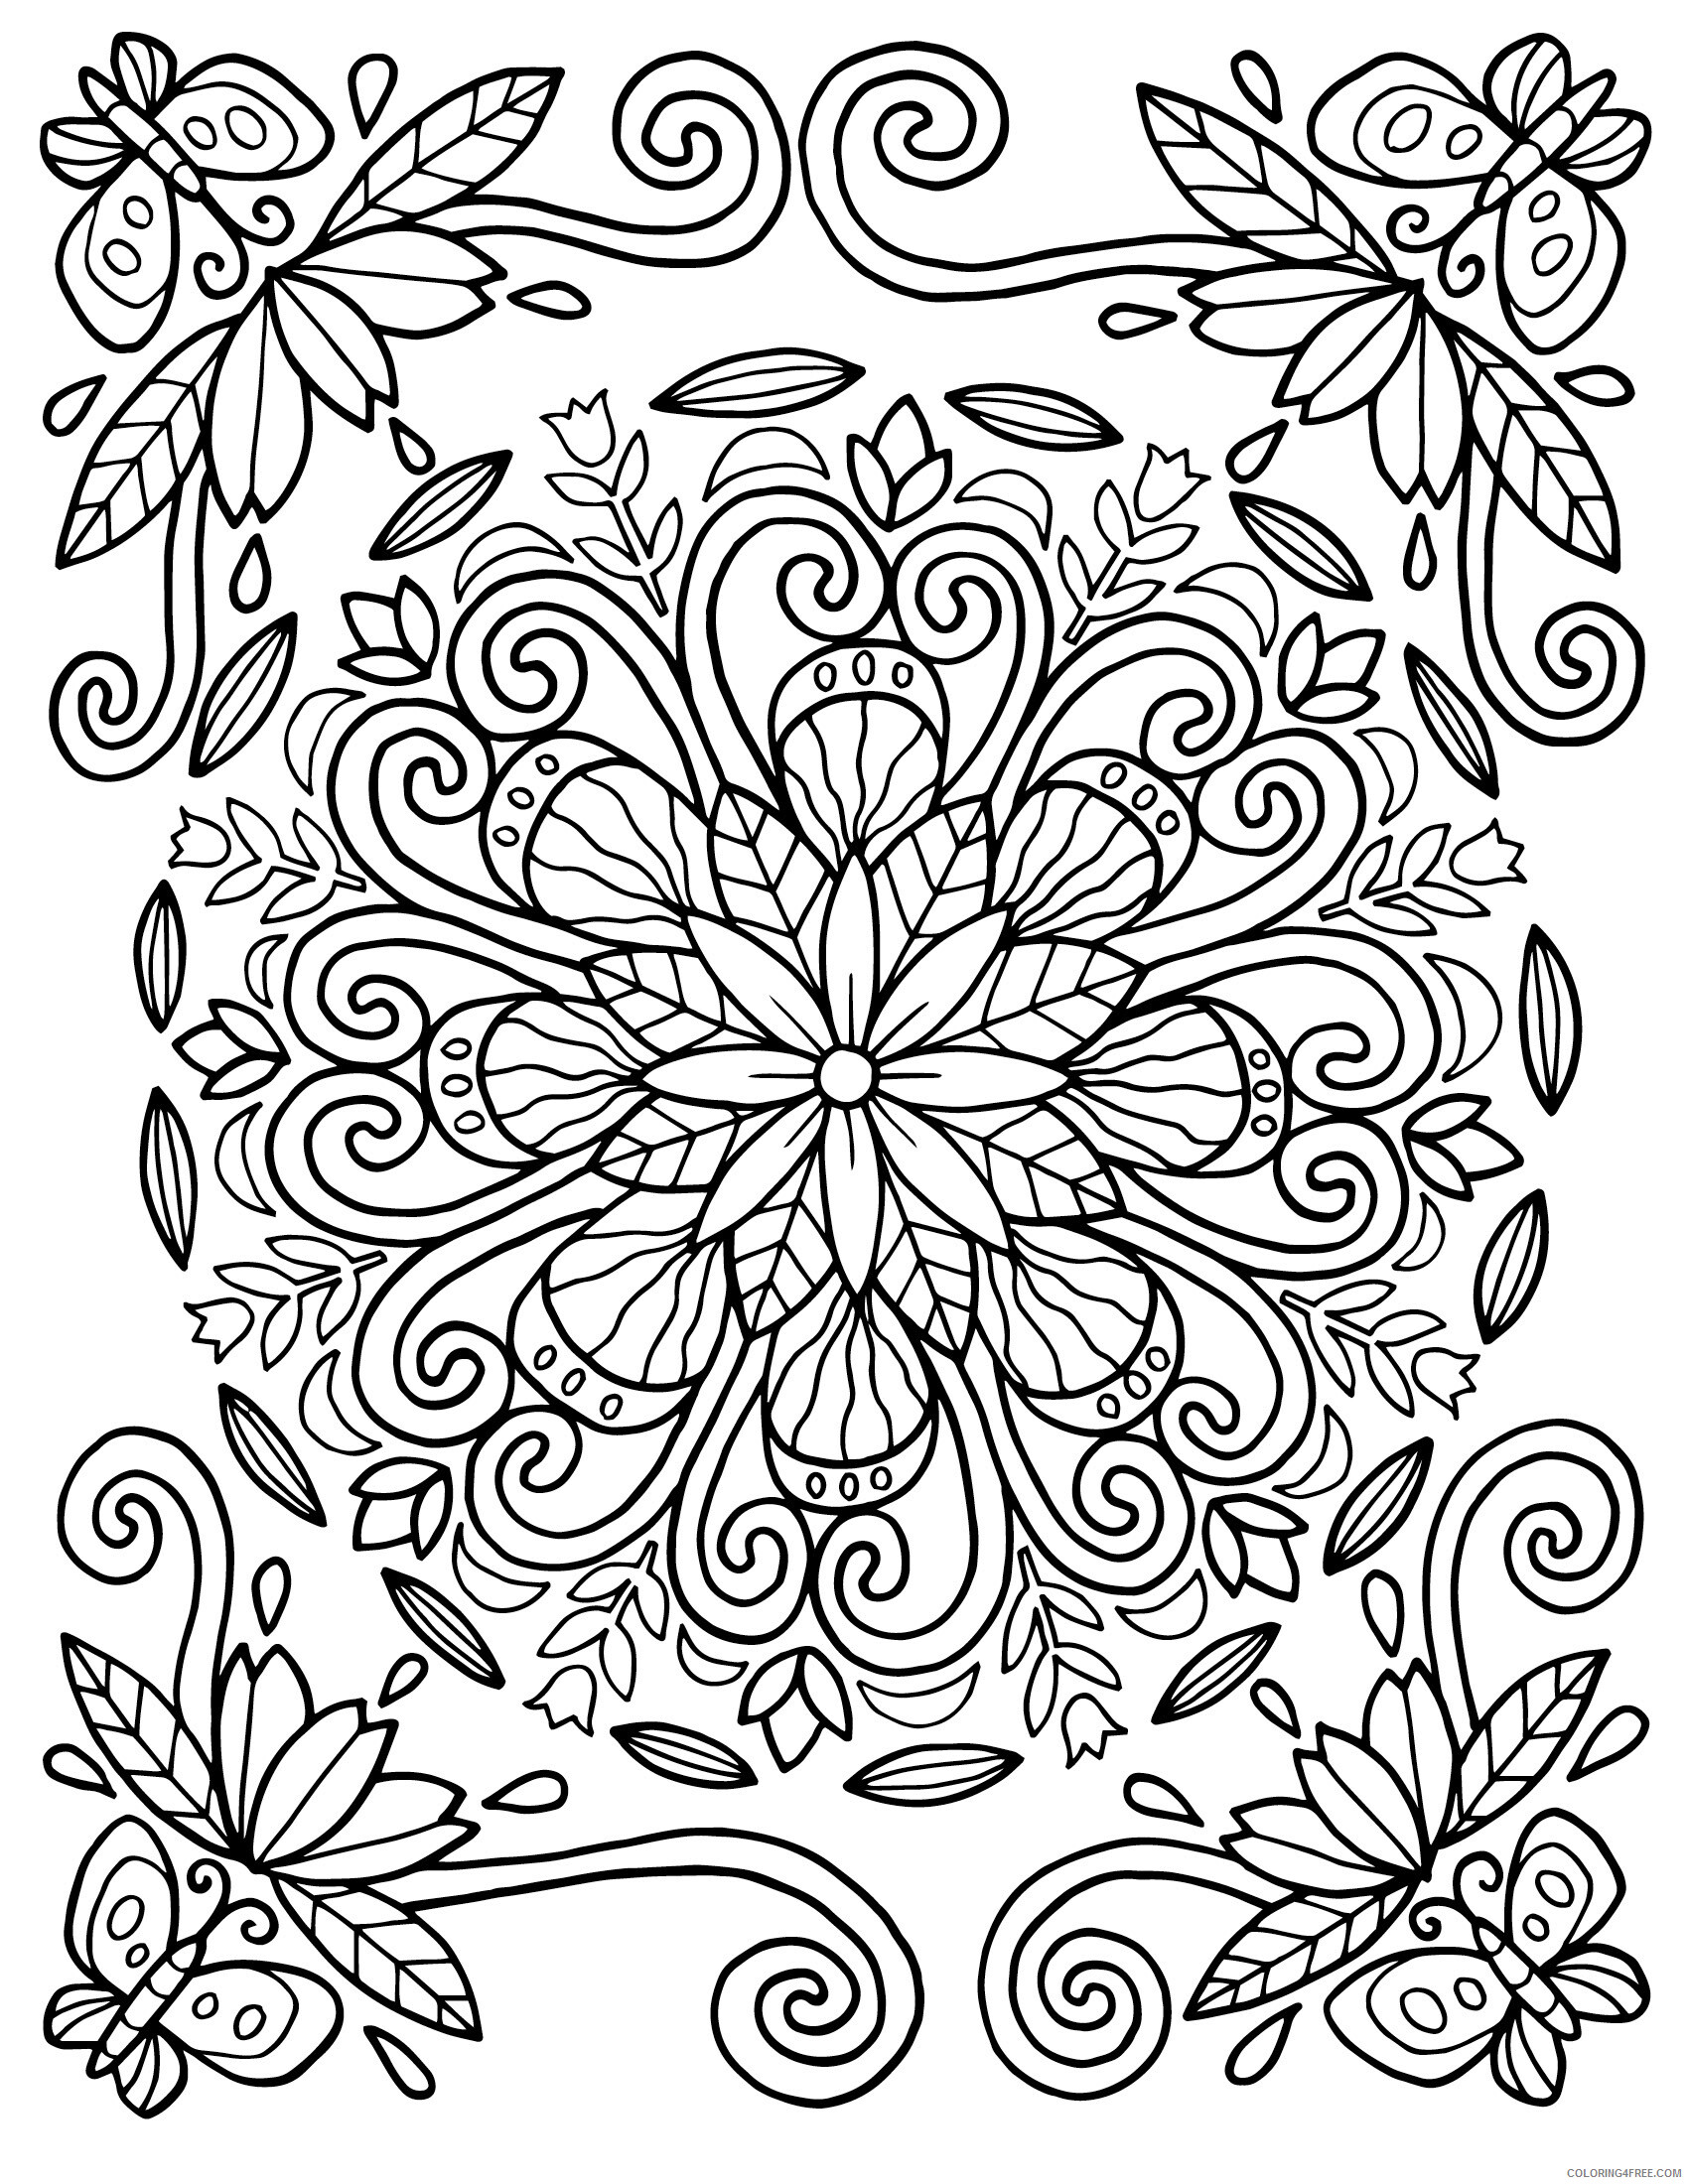 Mandala Coloring Pages Adult Floral Pattern For Adults Printable 2020 617 Coloring4free